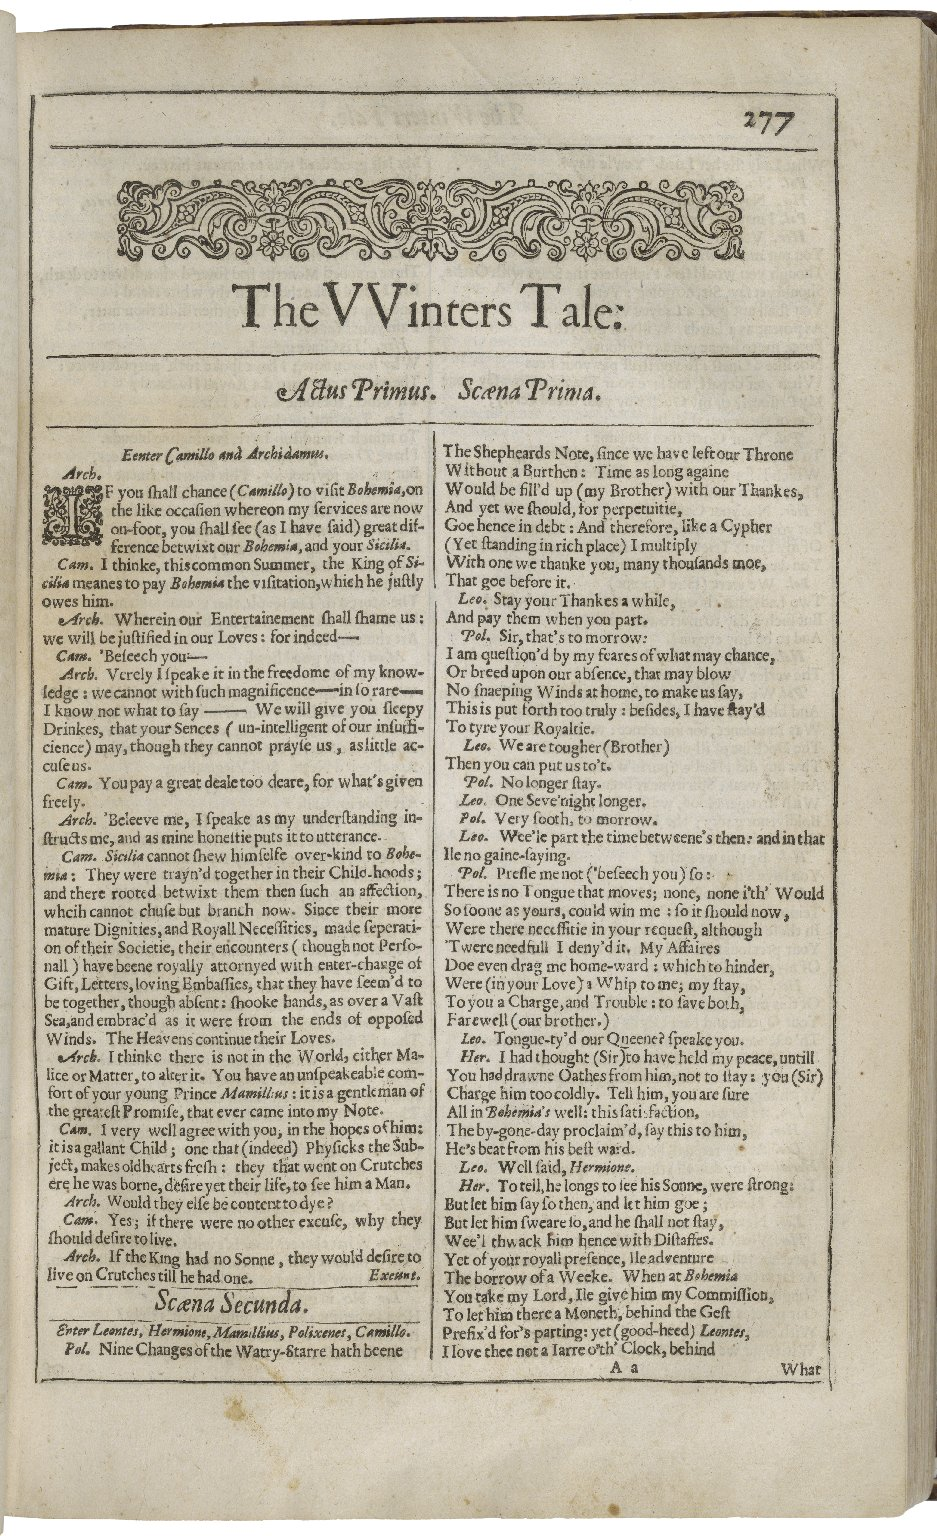 File:Second Folio Title Page of The Winter's Tale.jpg